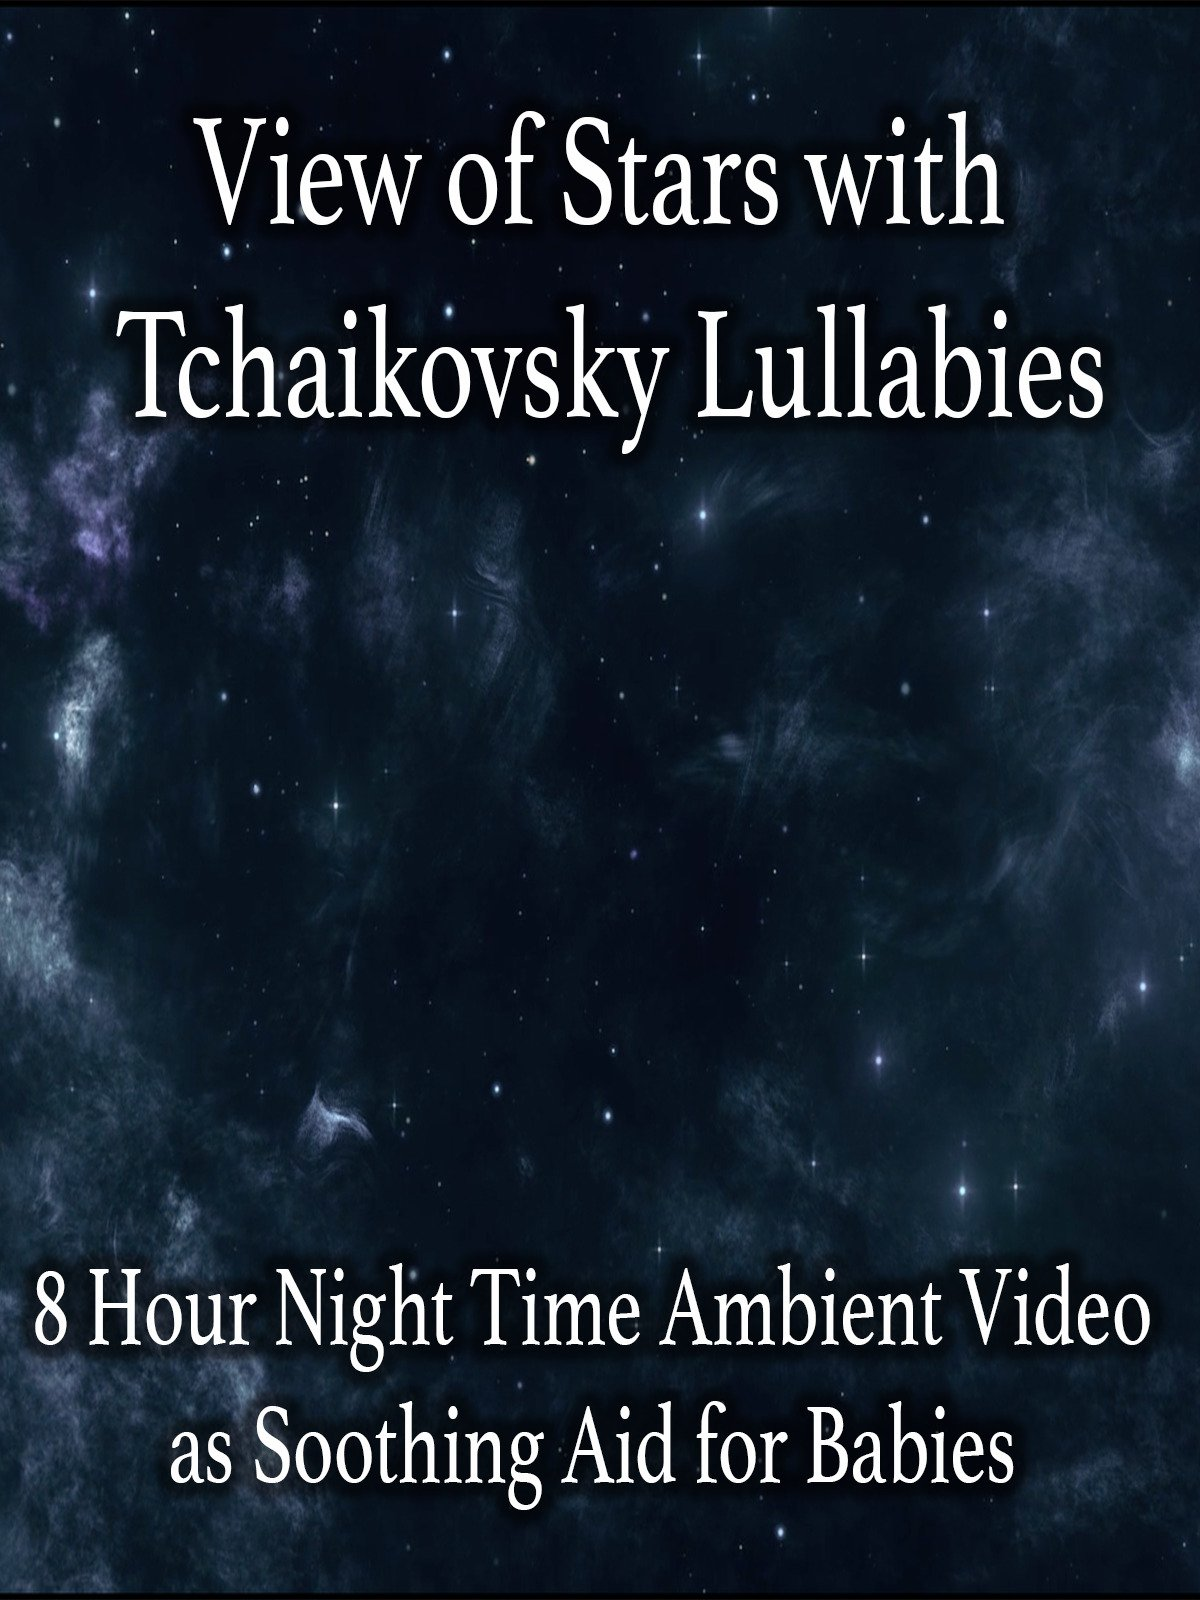 View of Stars with Tchaikovsky Lullabies 8 Hour Night Time Ambient Video as Soothing Aid for Babies